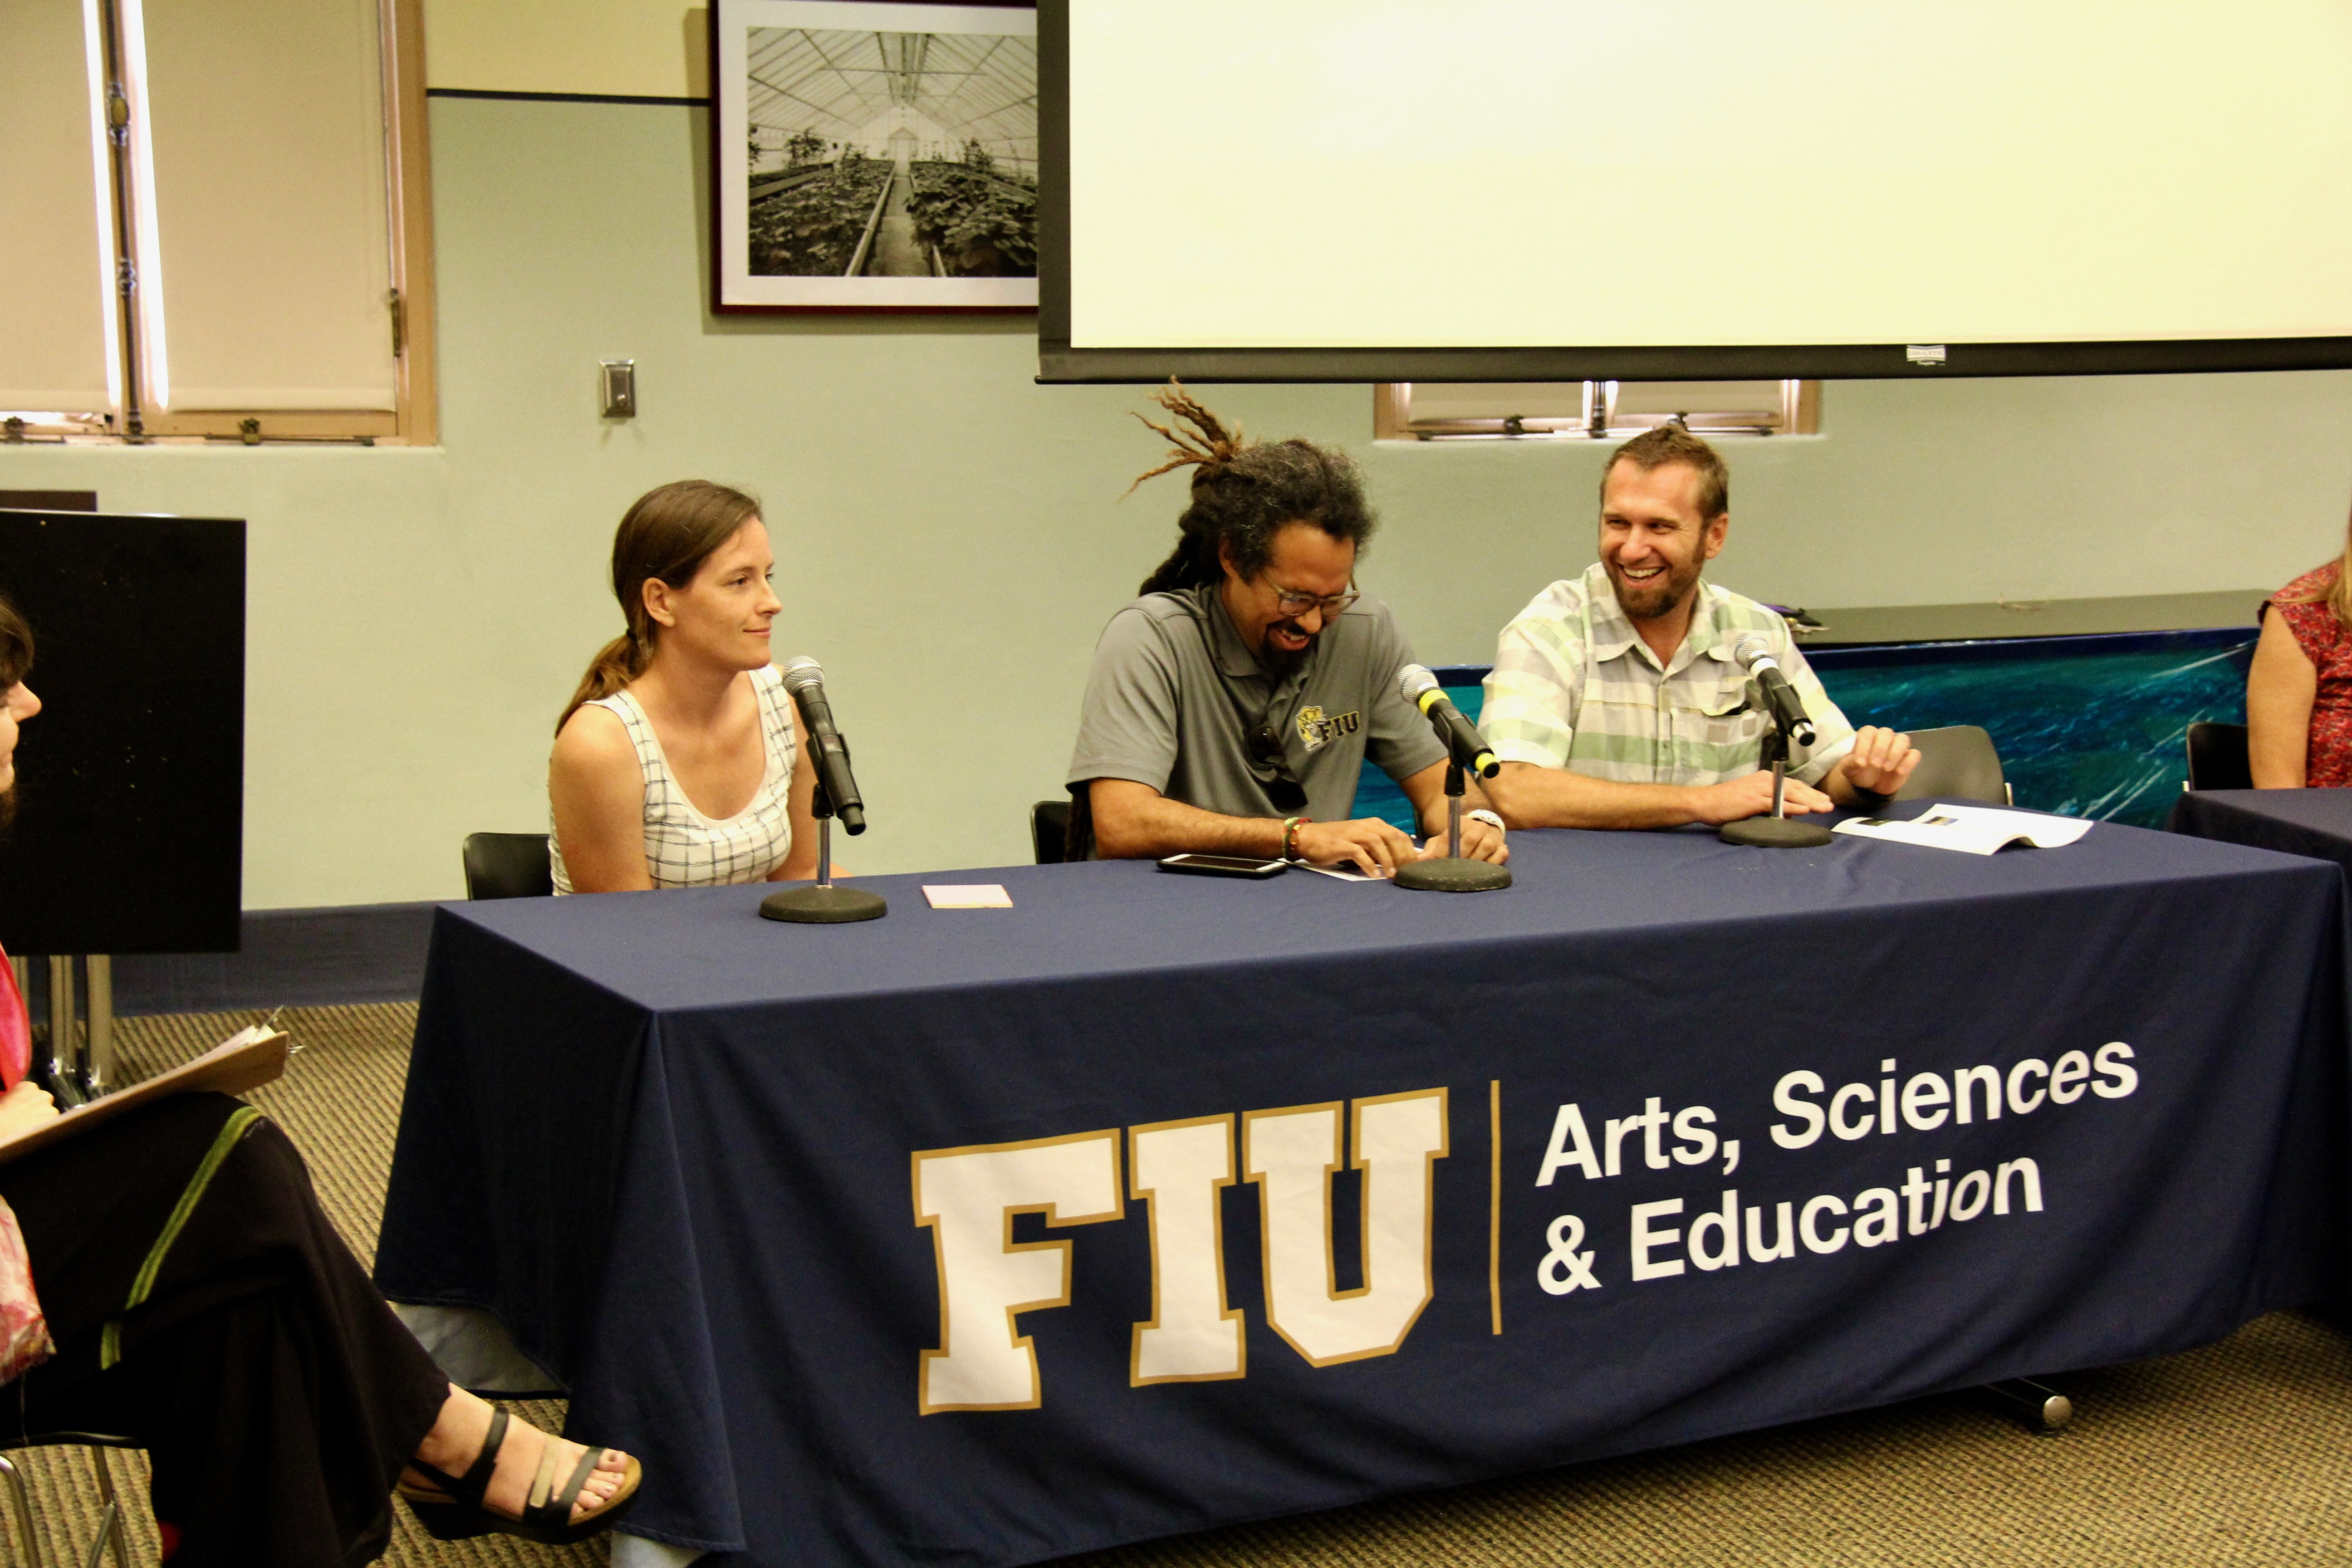 AOML Oceanographer Chris Kelble (right) sharing his knowledge on the scientific panel. Image credit: NOAA